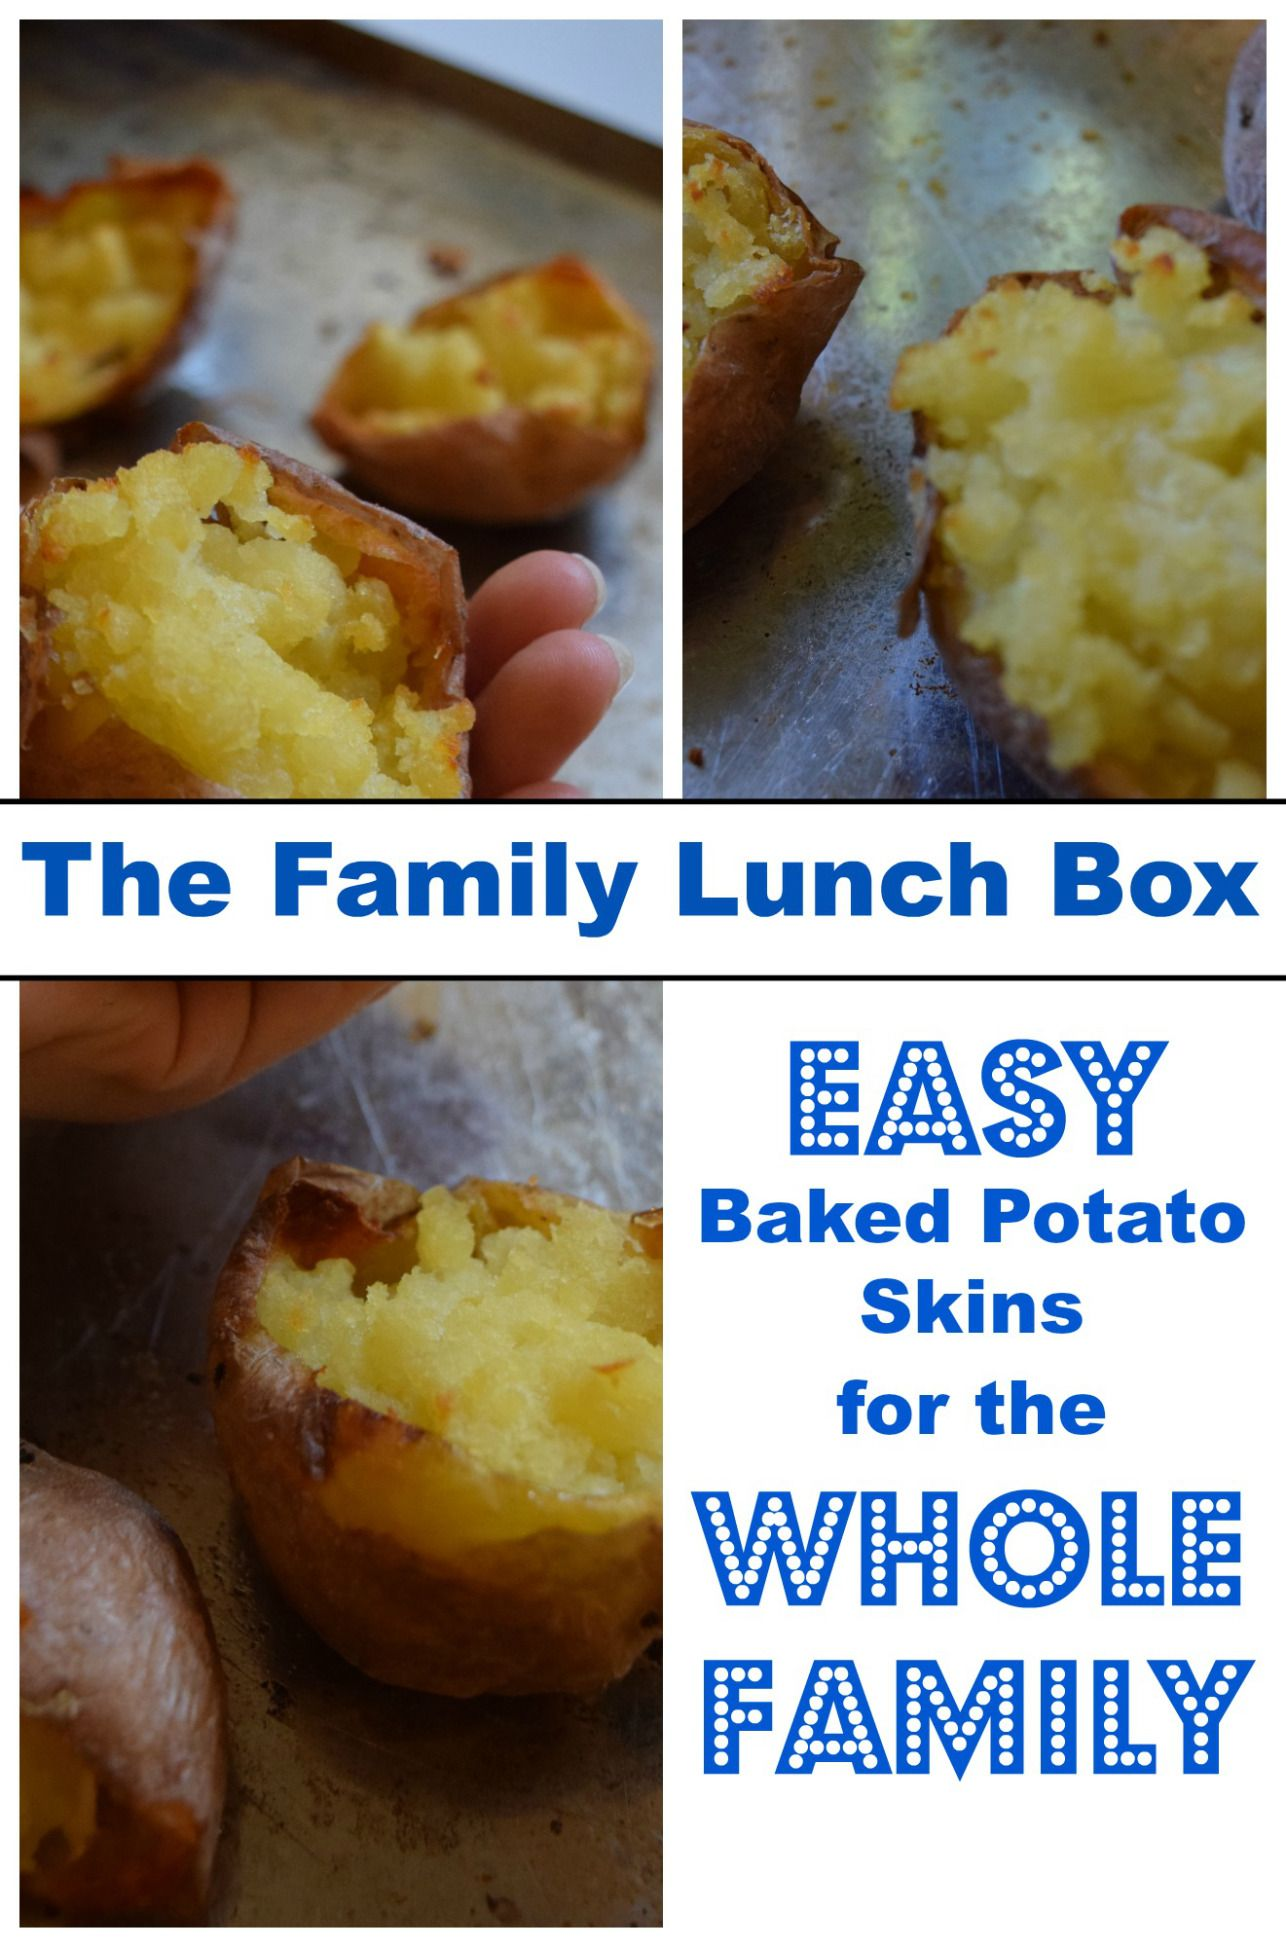 Superbowl Sunday Cooking With Kids: Easy Potato Skins for